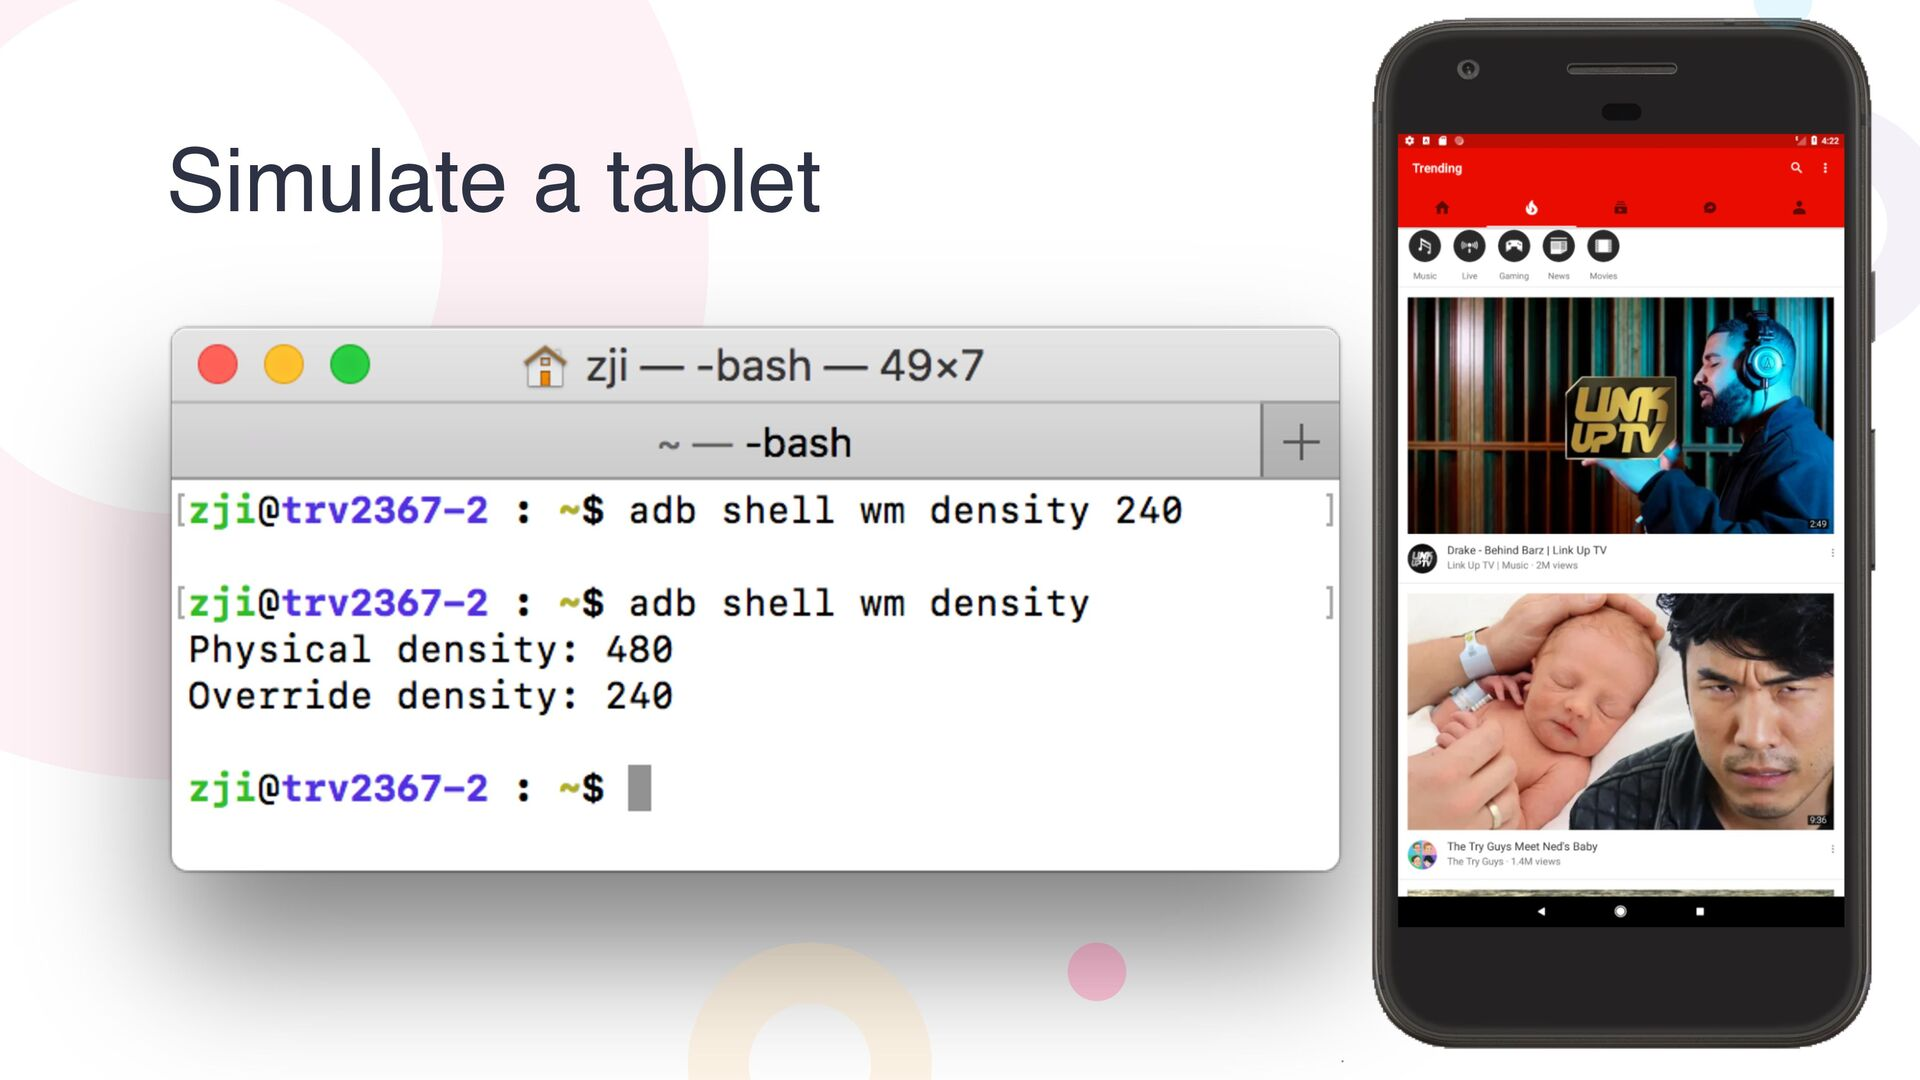 Simulate a tablet